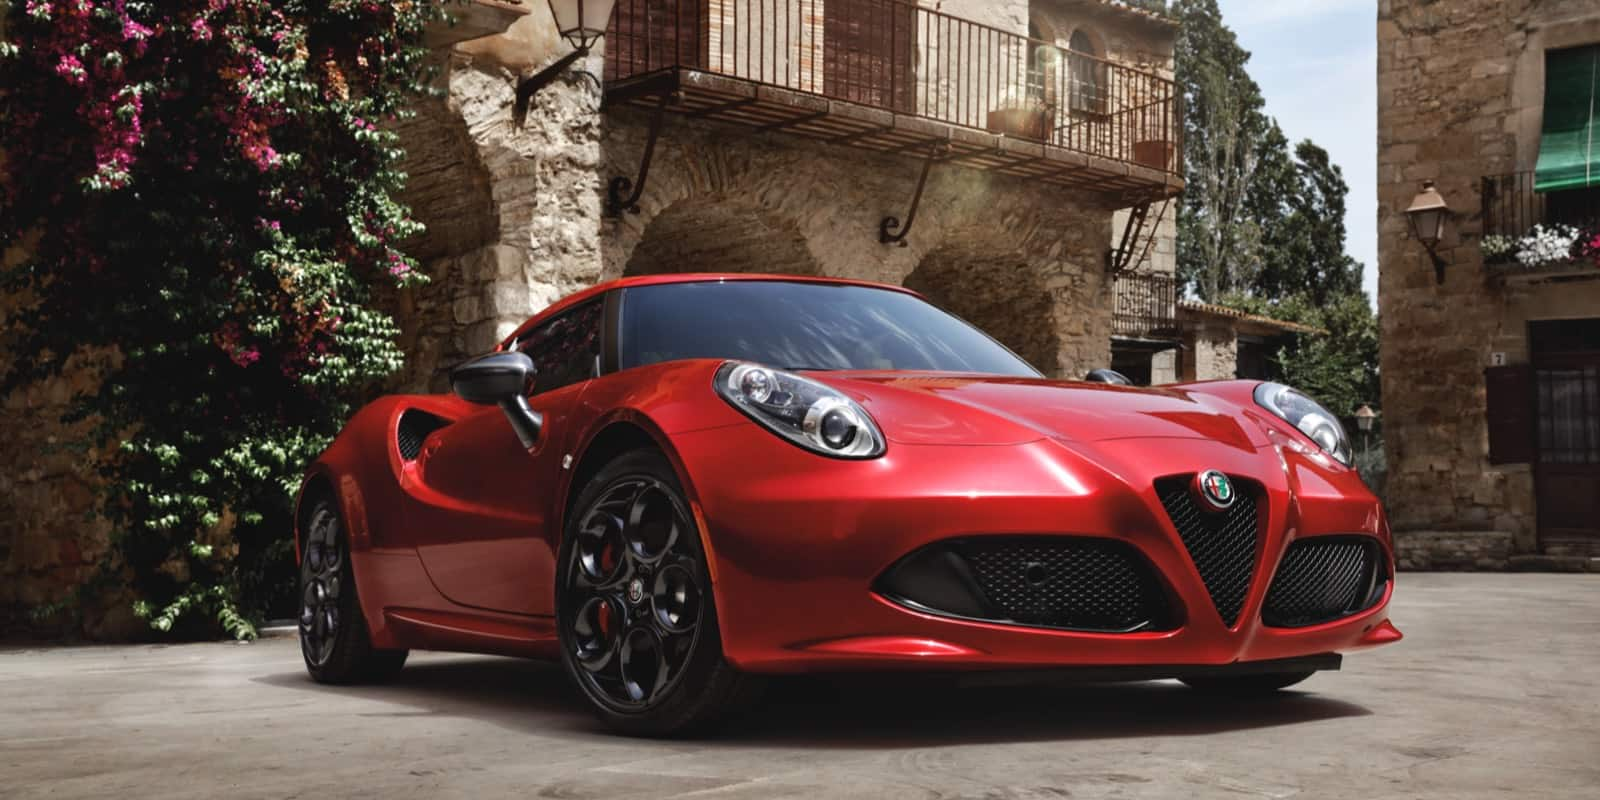 alfa romeo 4c coupe price and specs alfa romeo usa. Black Bedroom Furniture Sets. Home Design Ideas